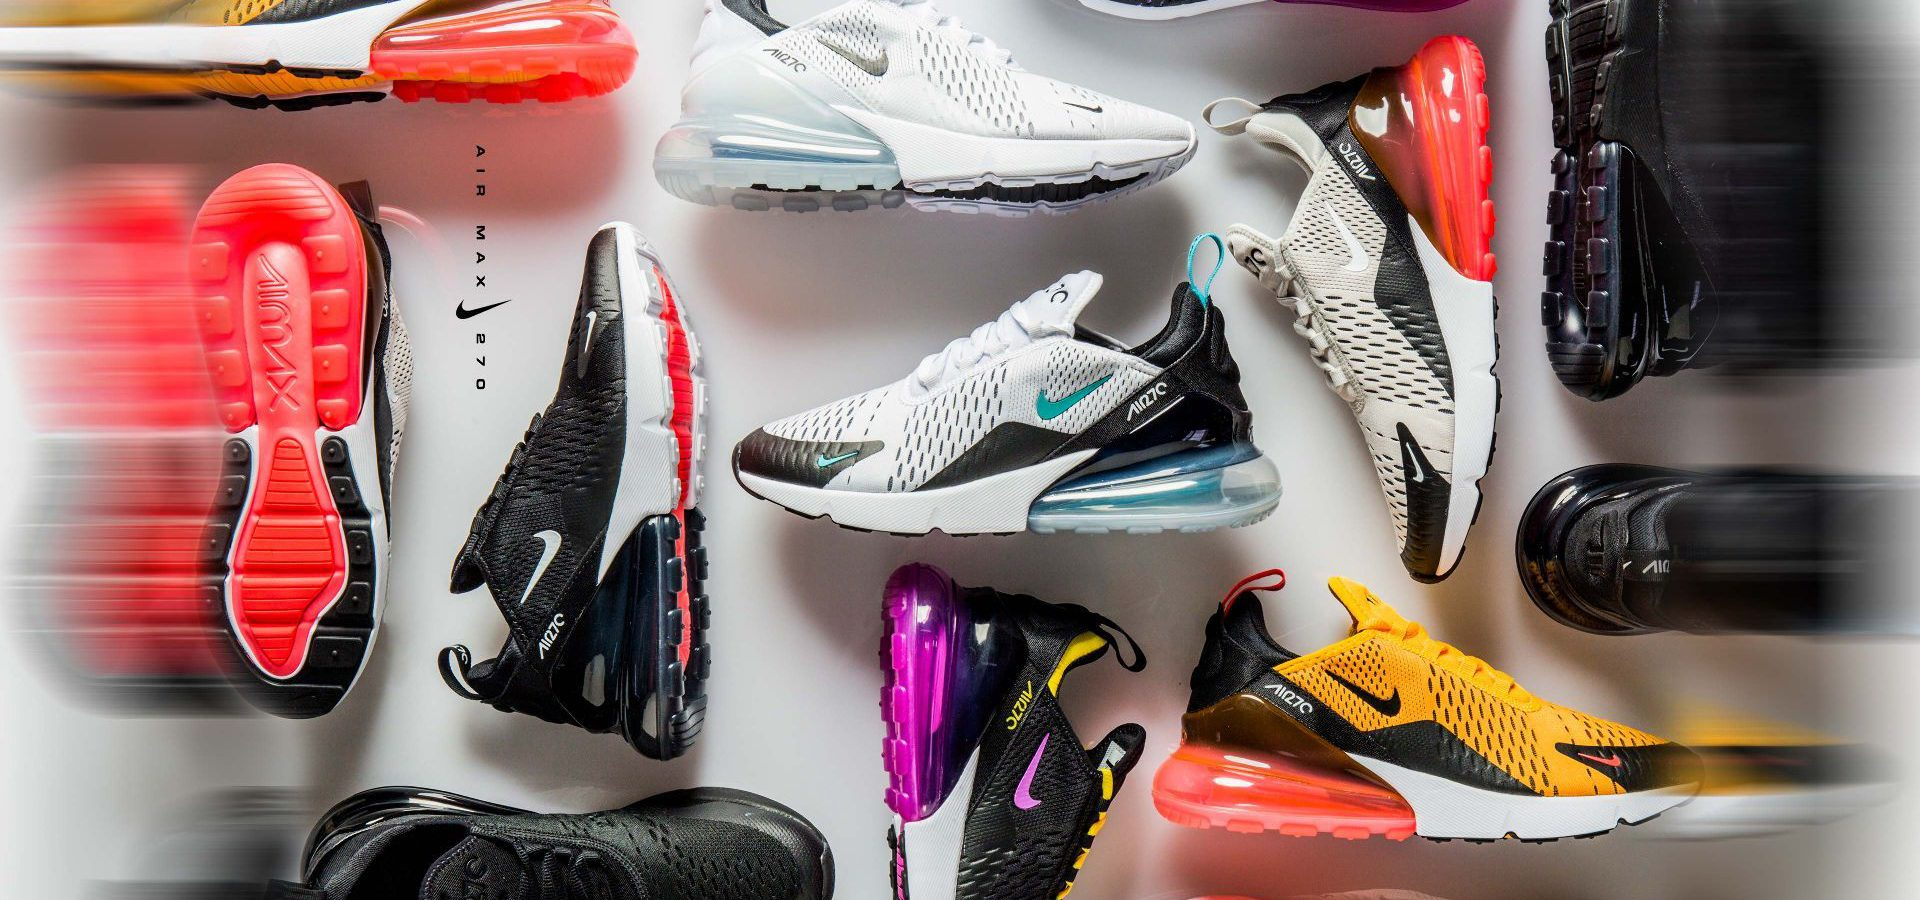 The Amazing Nike Air Max 270 Collection